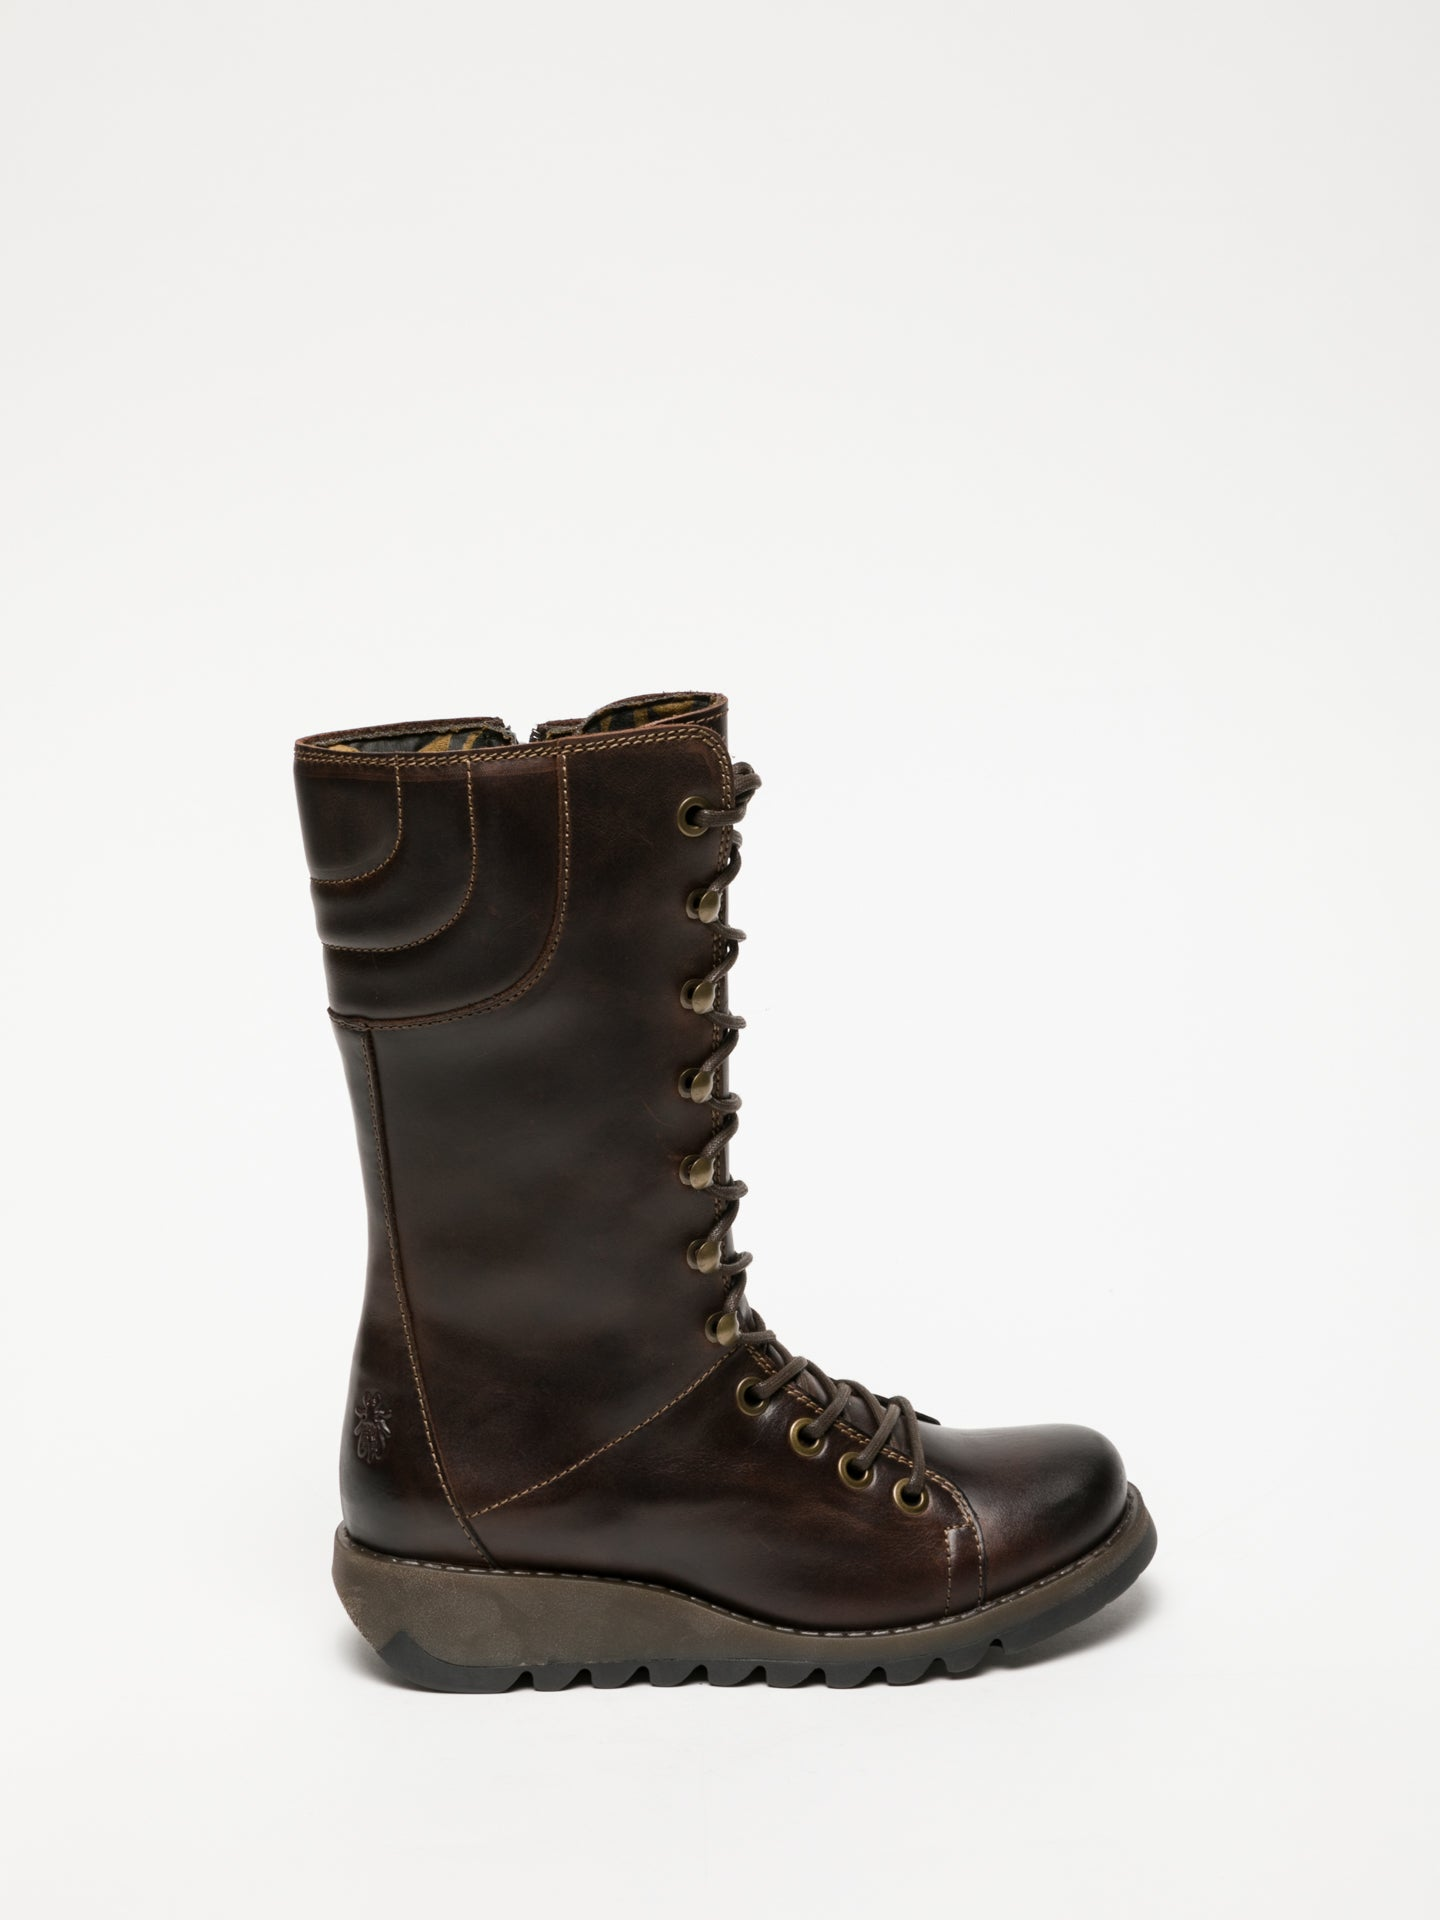 Fly London Brown Lace-up Boots